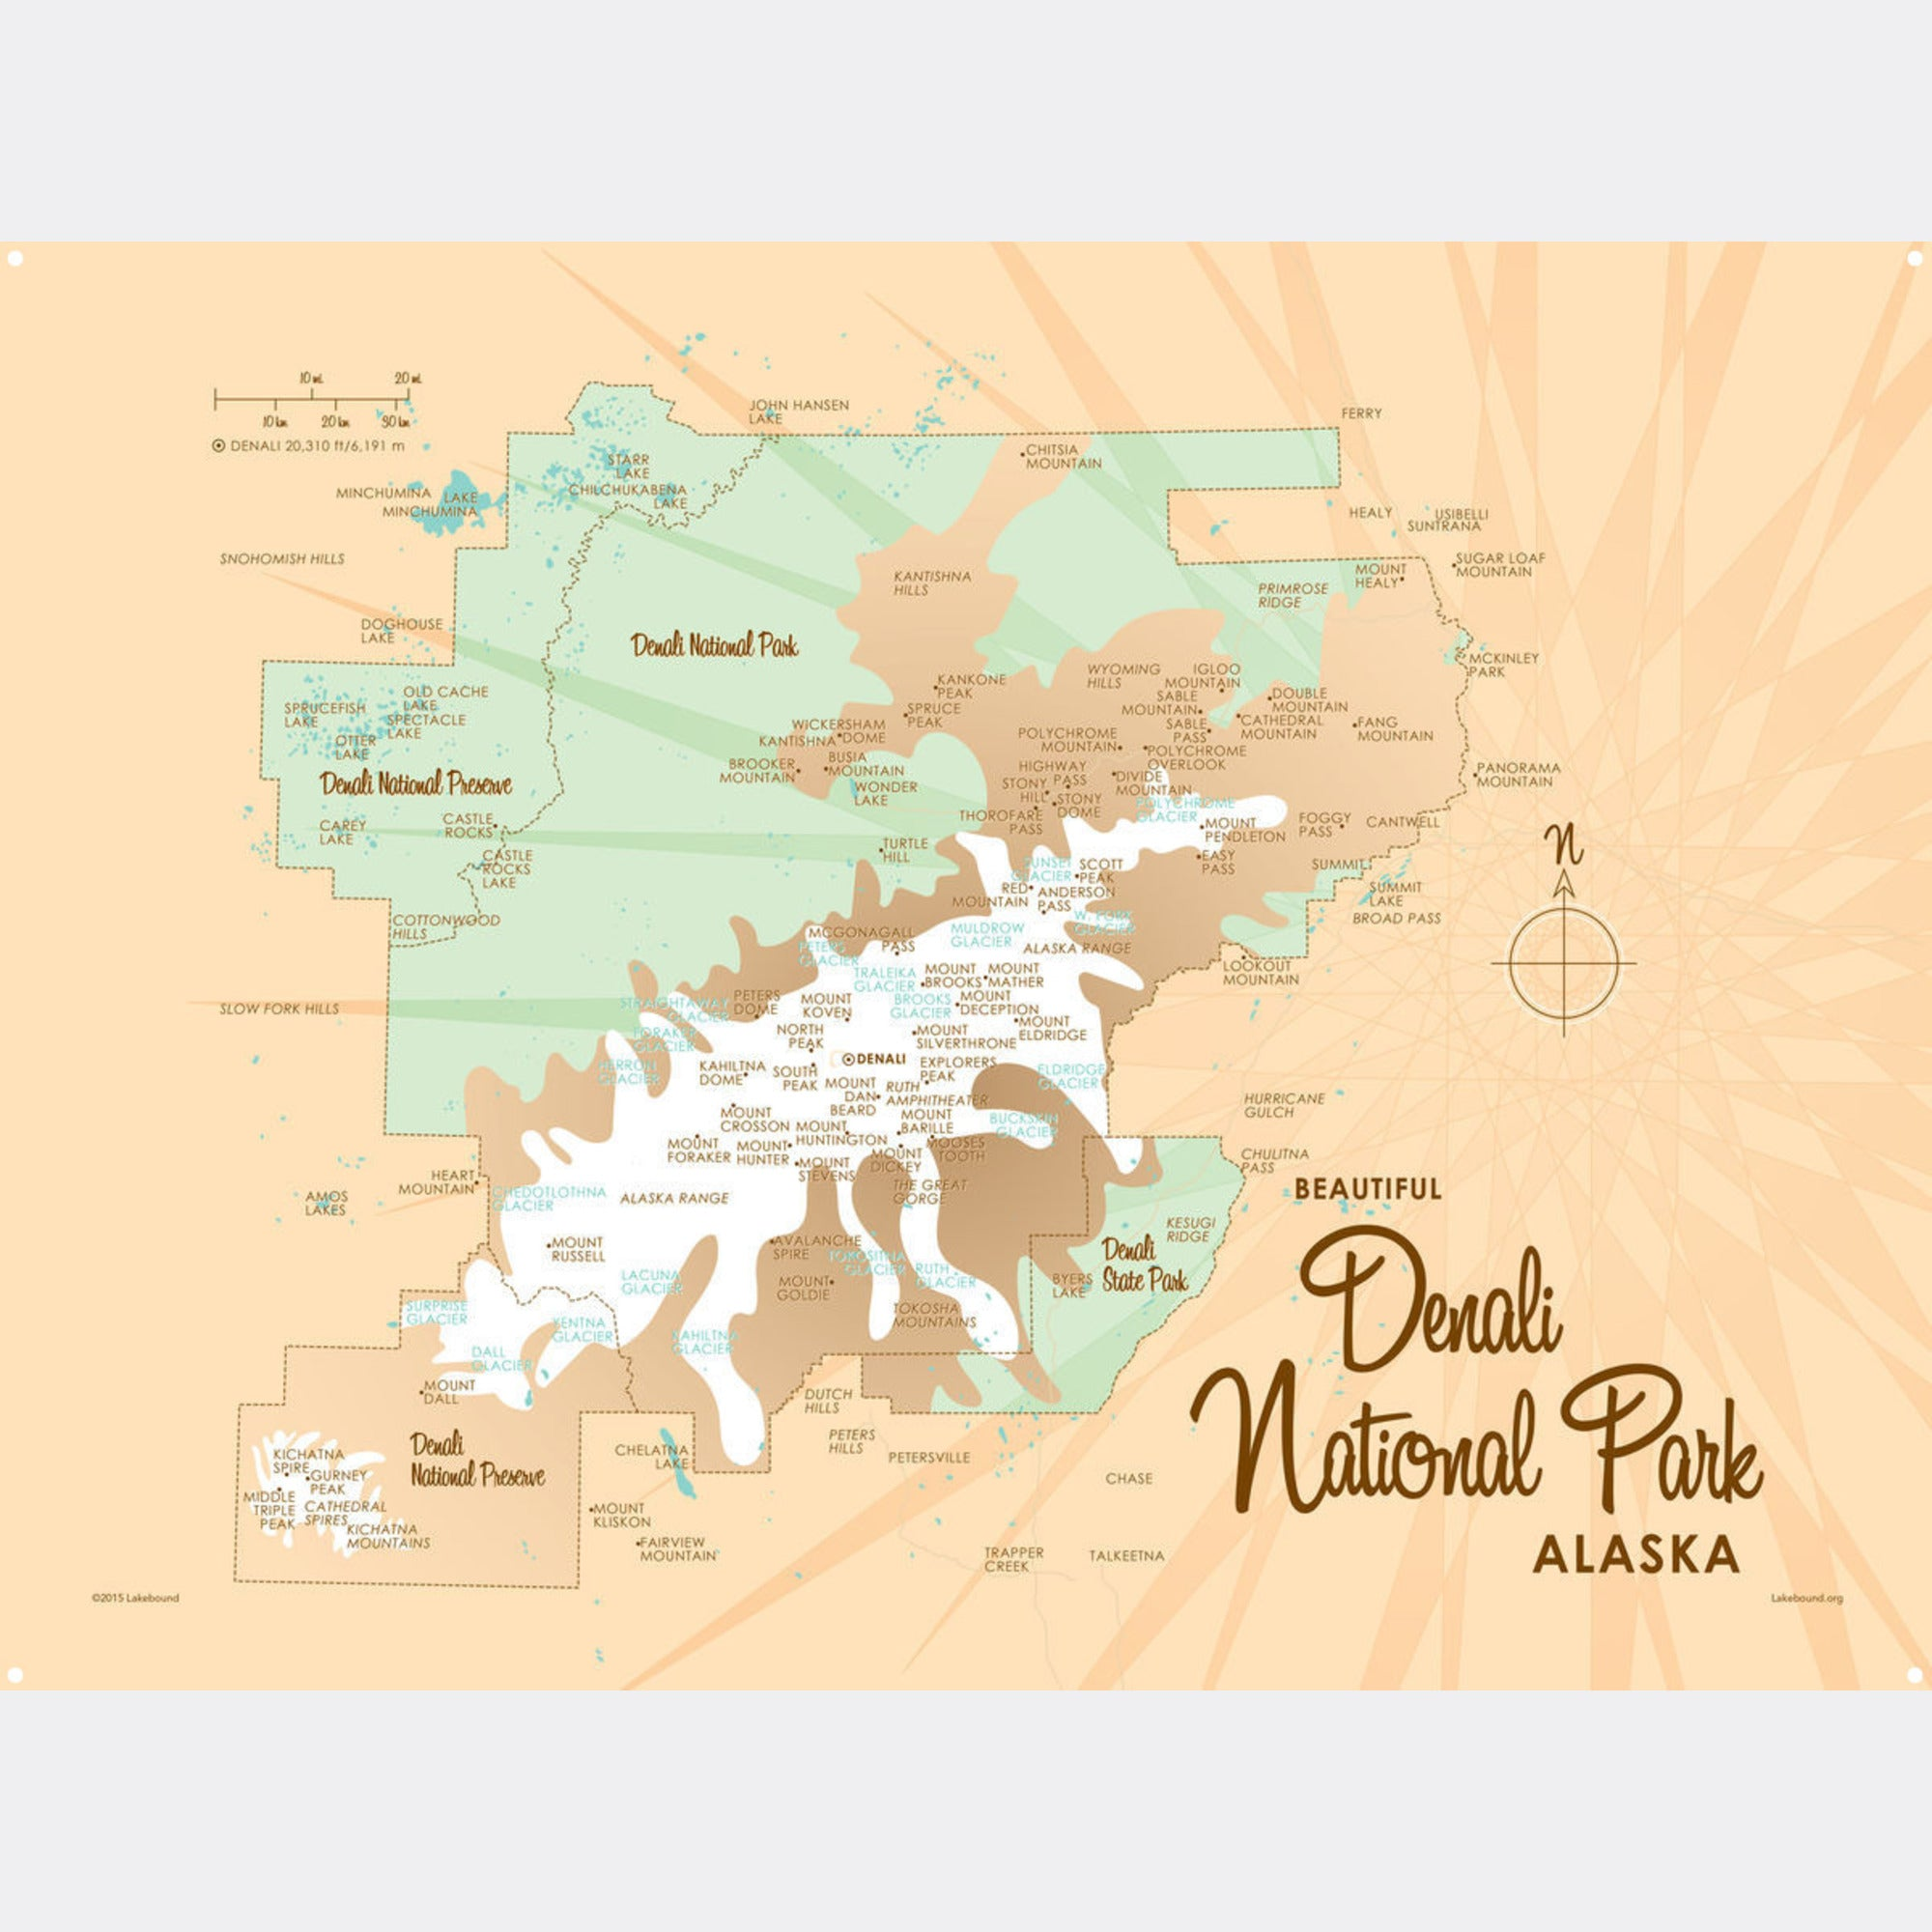 Denali National Park Alaska, Metal Sign Map Art